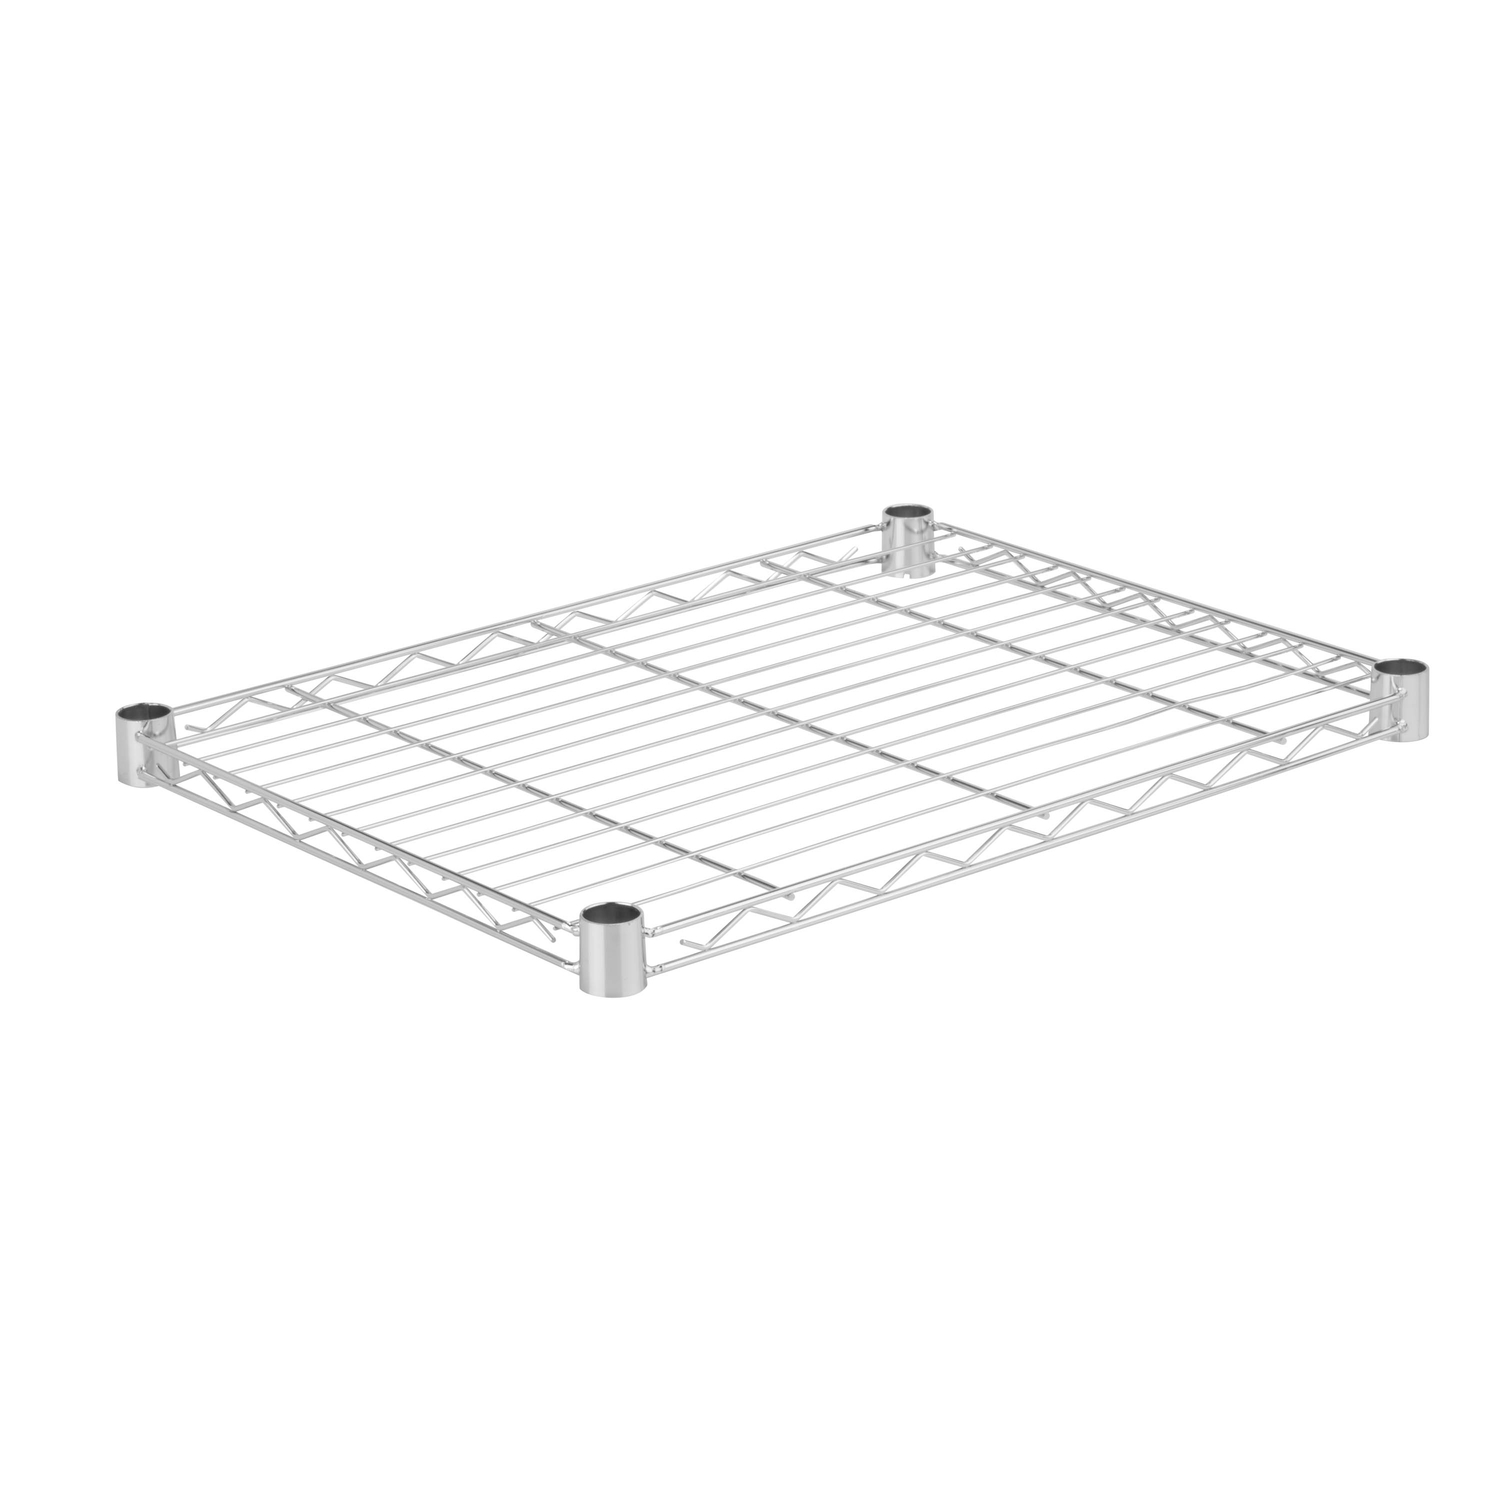 Honey Can Do  1 in. H x 18 in. D x 24 in. W Shelf Rack  Steel